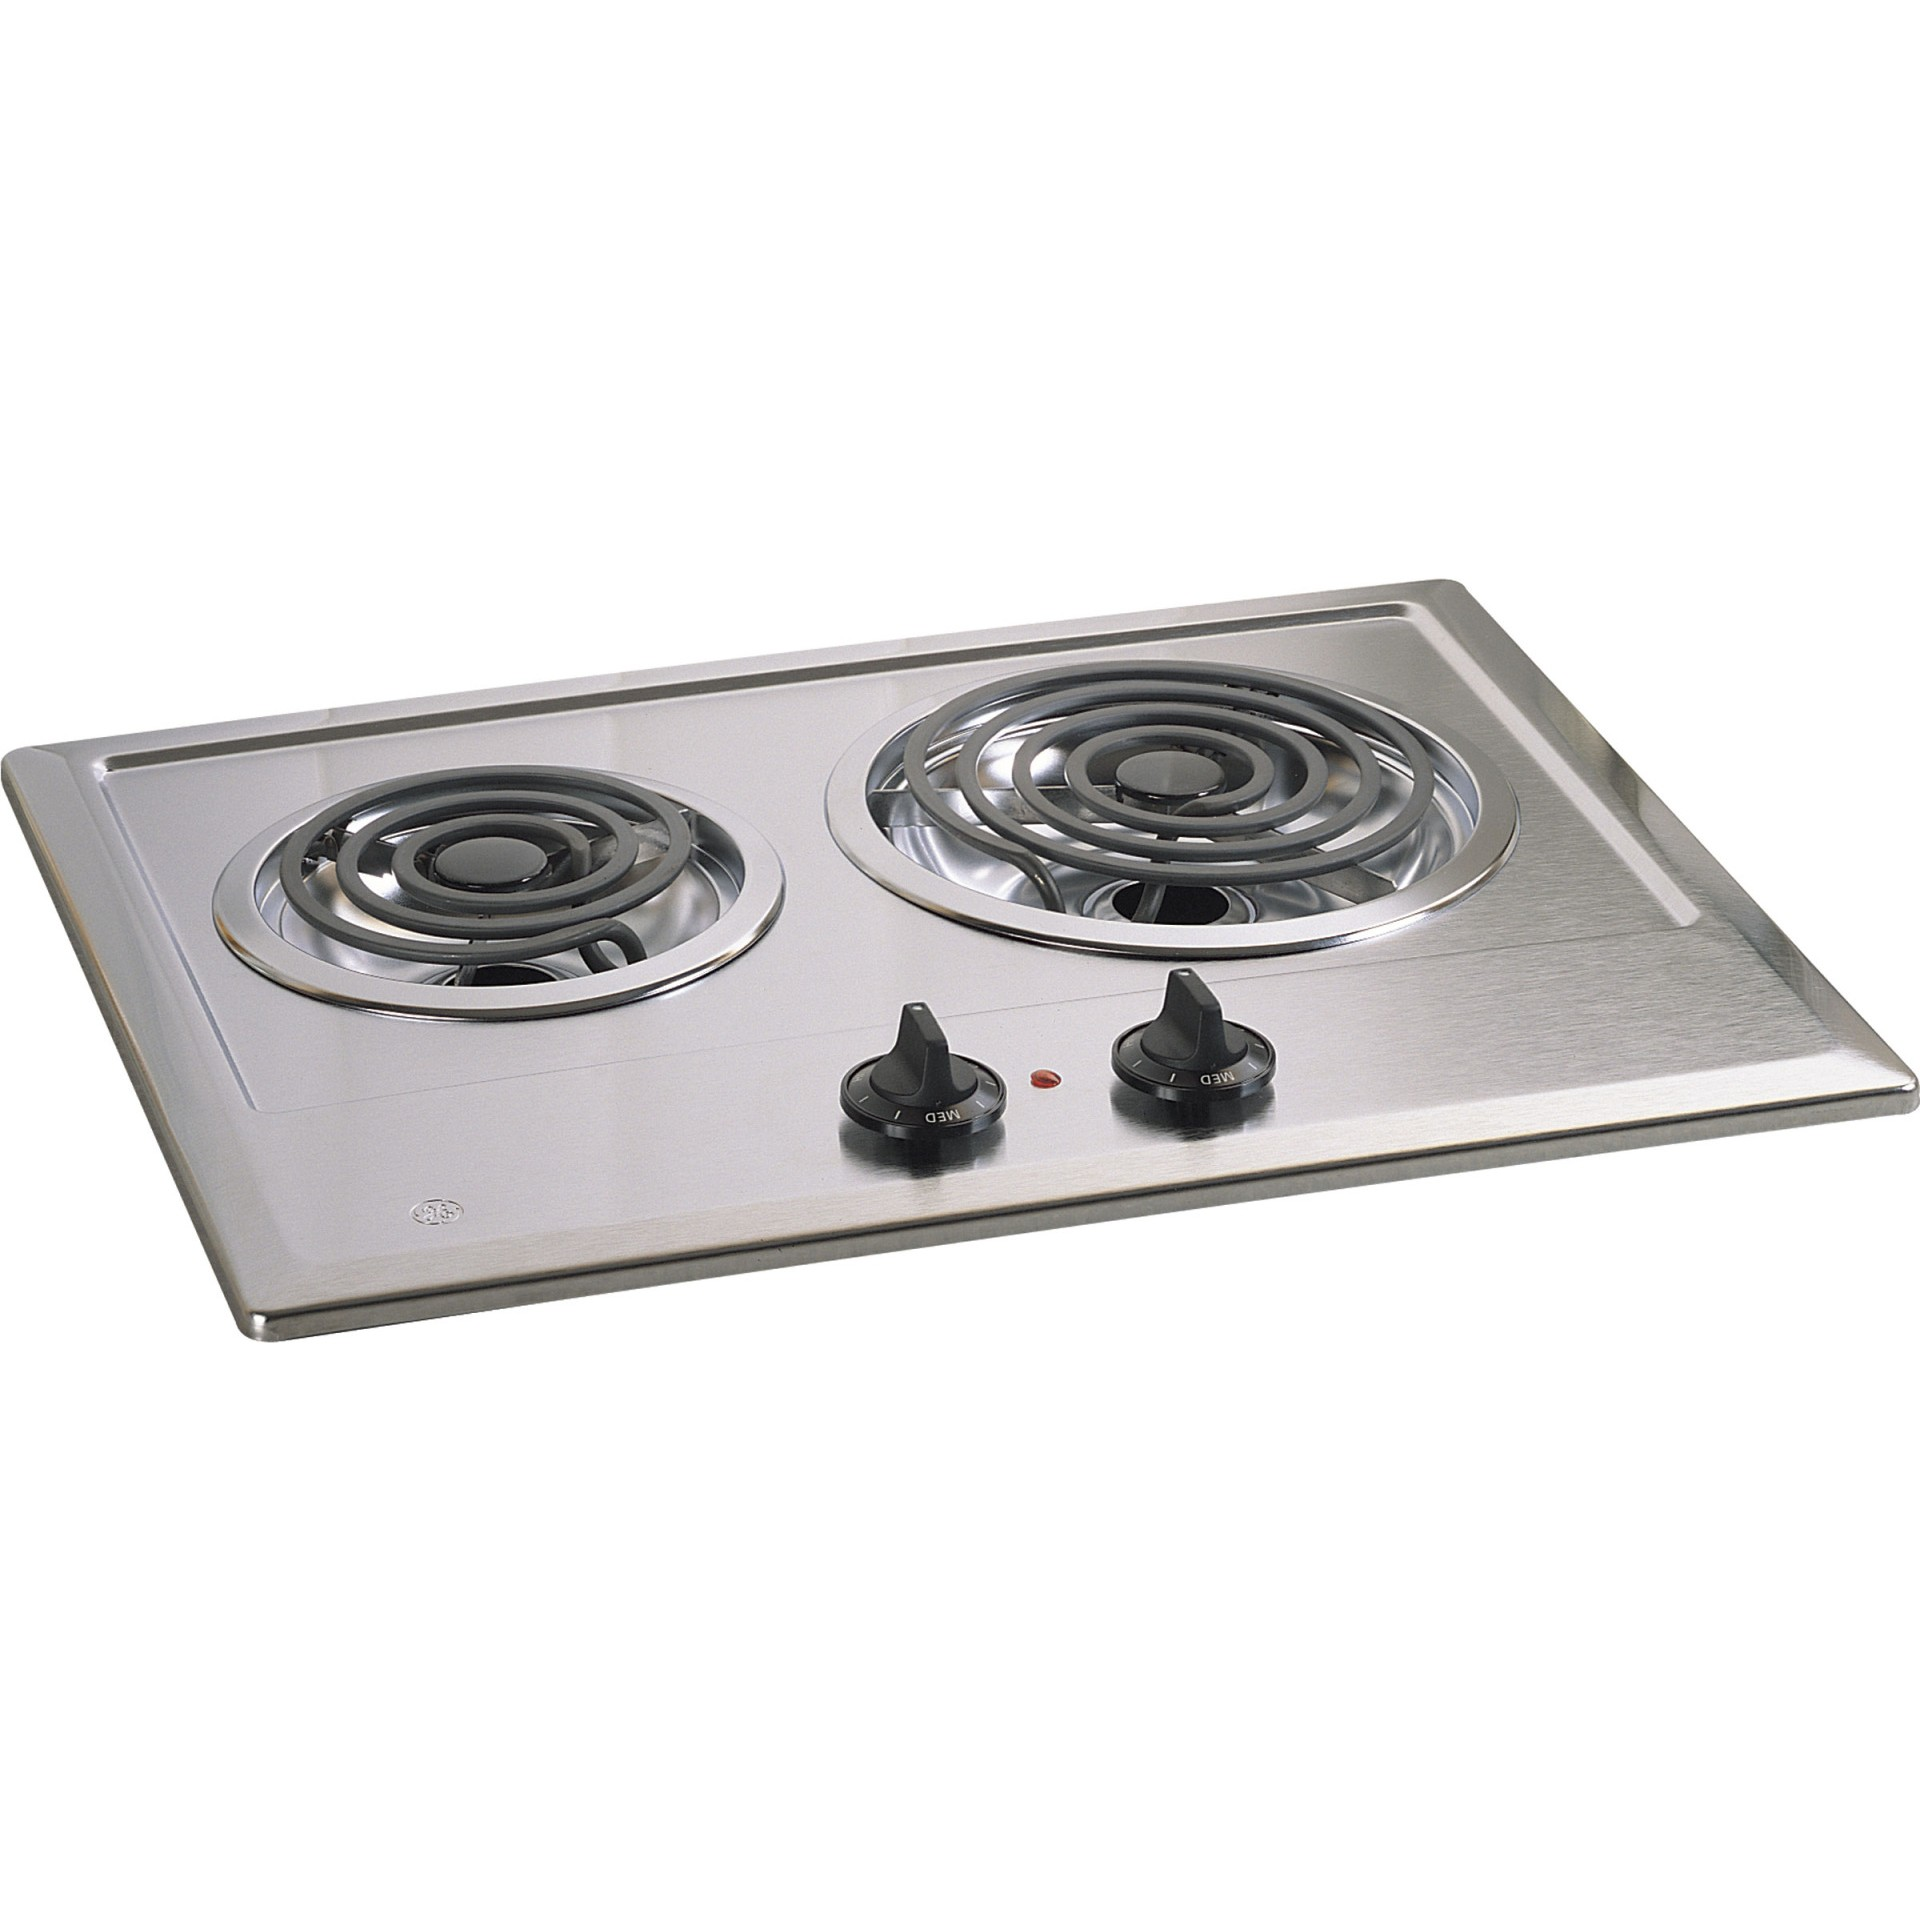 Jp201cbss Ge Built In Electric Cooktop Stainless Steel